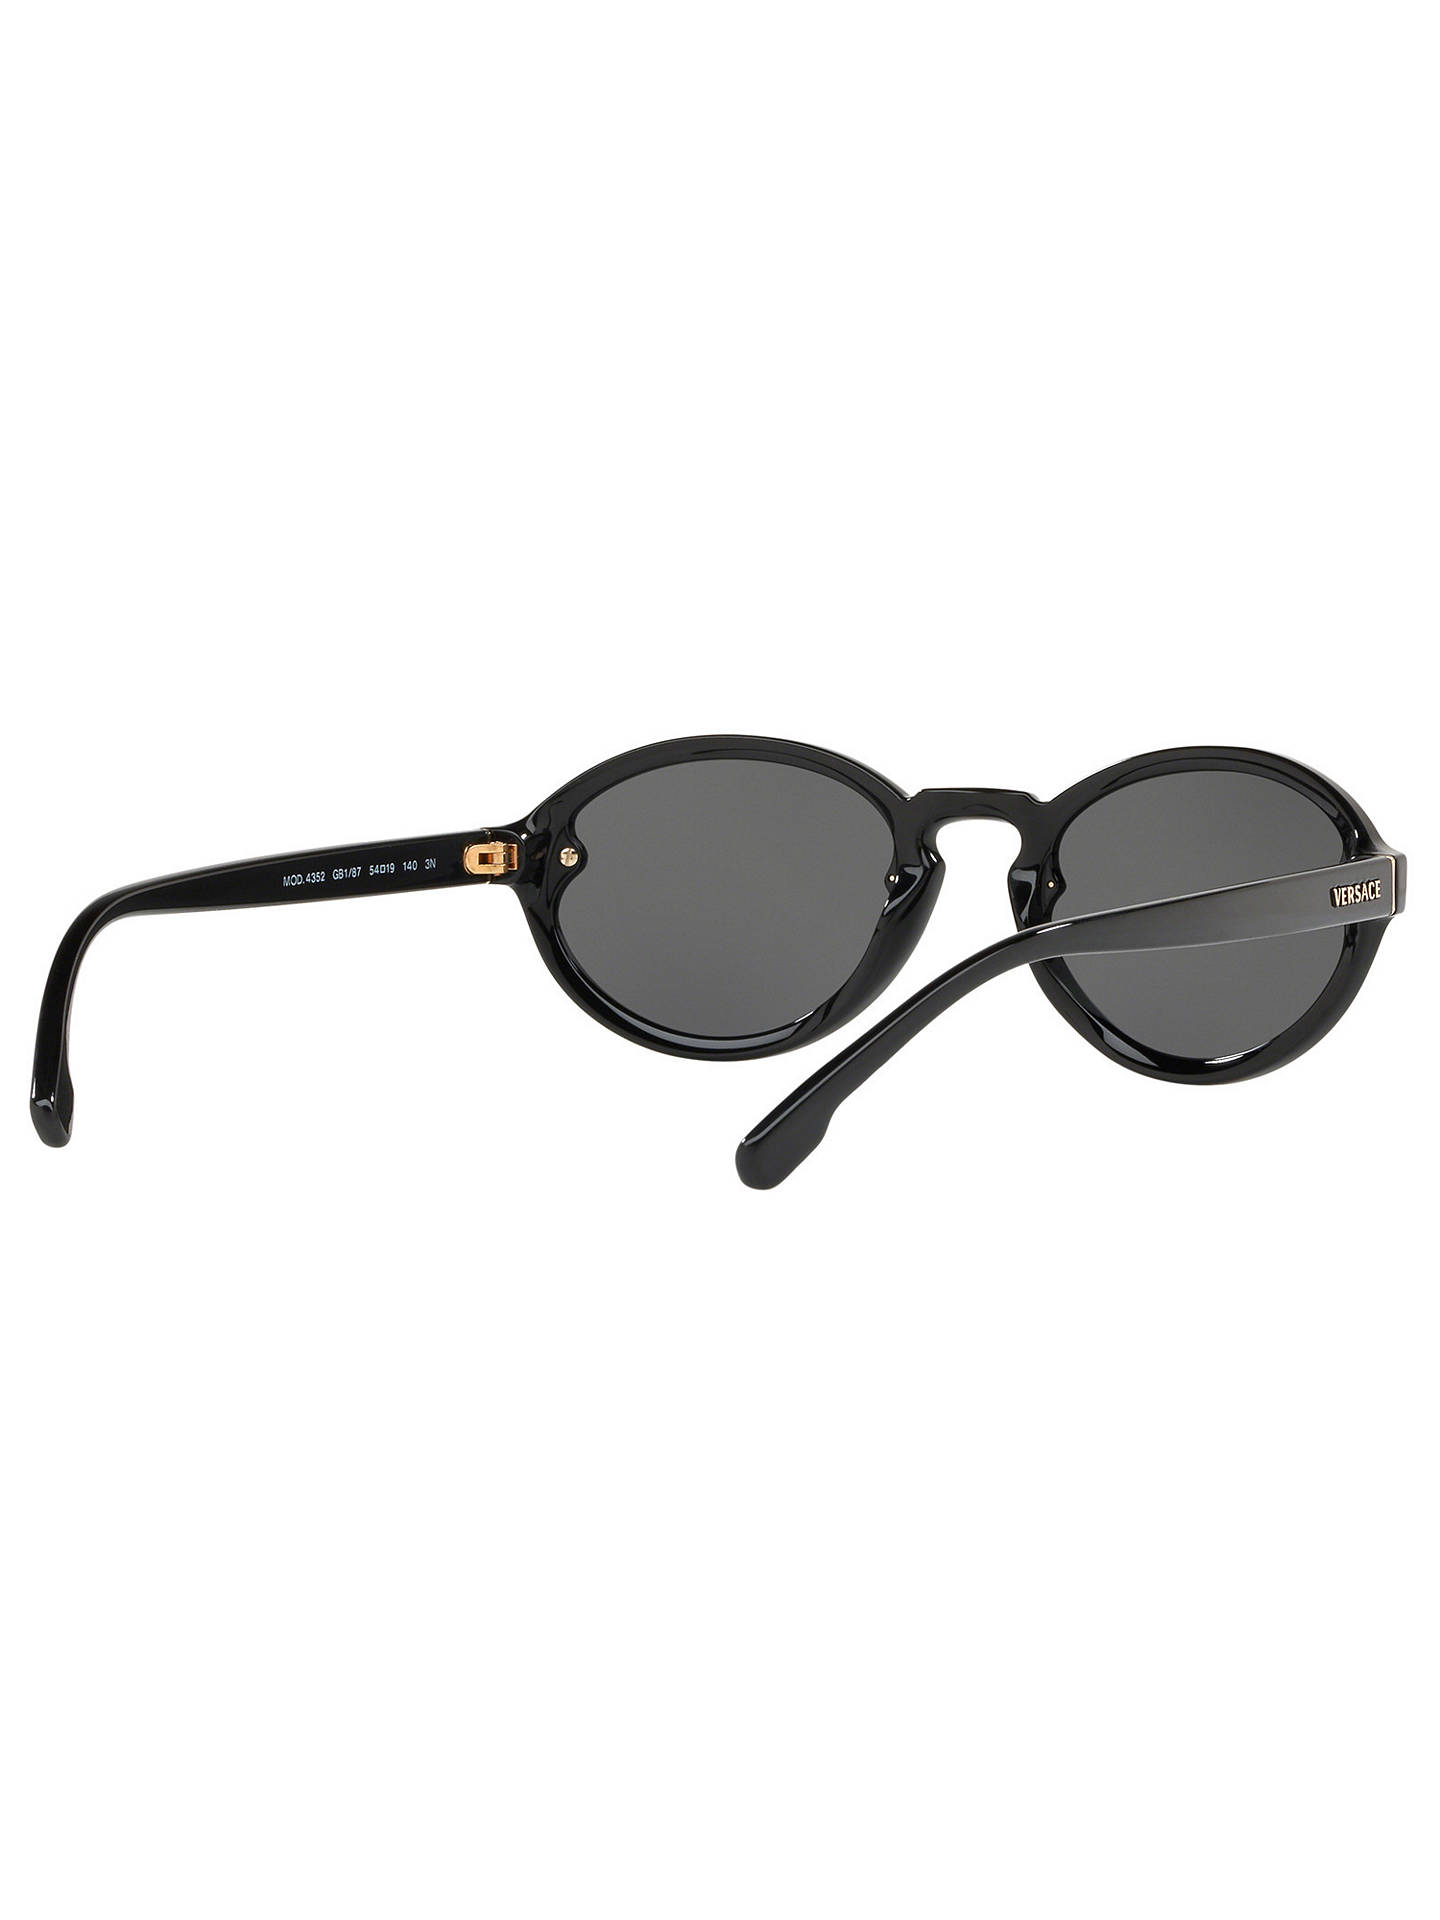 4f9f70d1d7 Versace VE4352 Unisex Oval Sunglasses at John Lewis   Partners